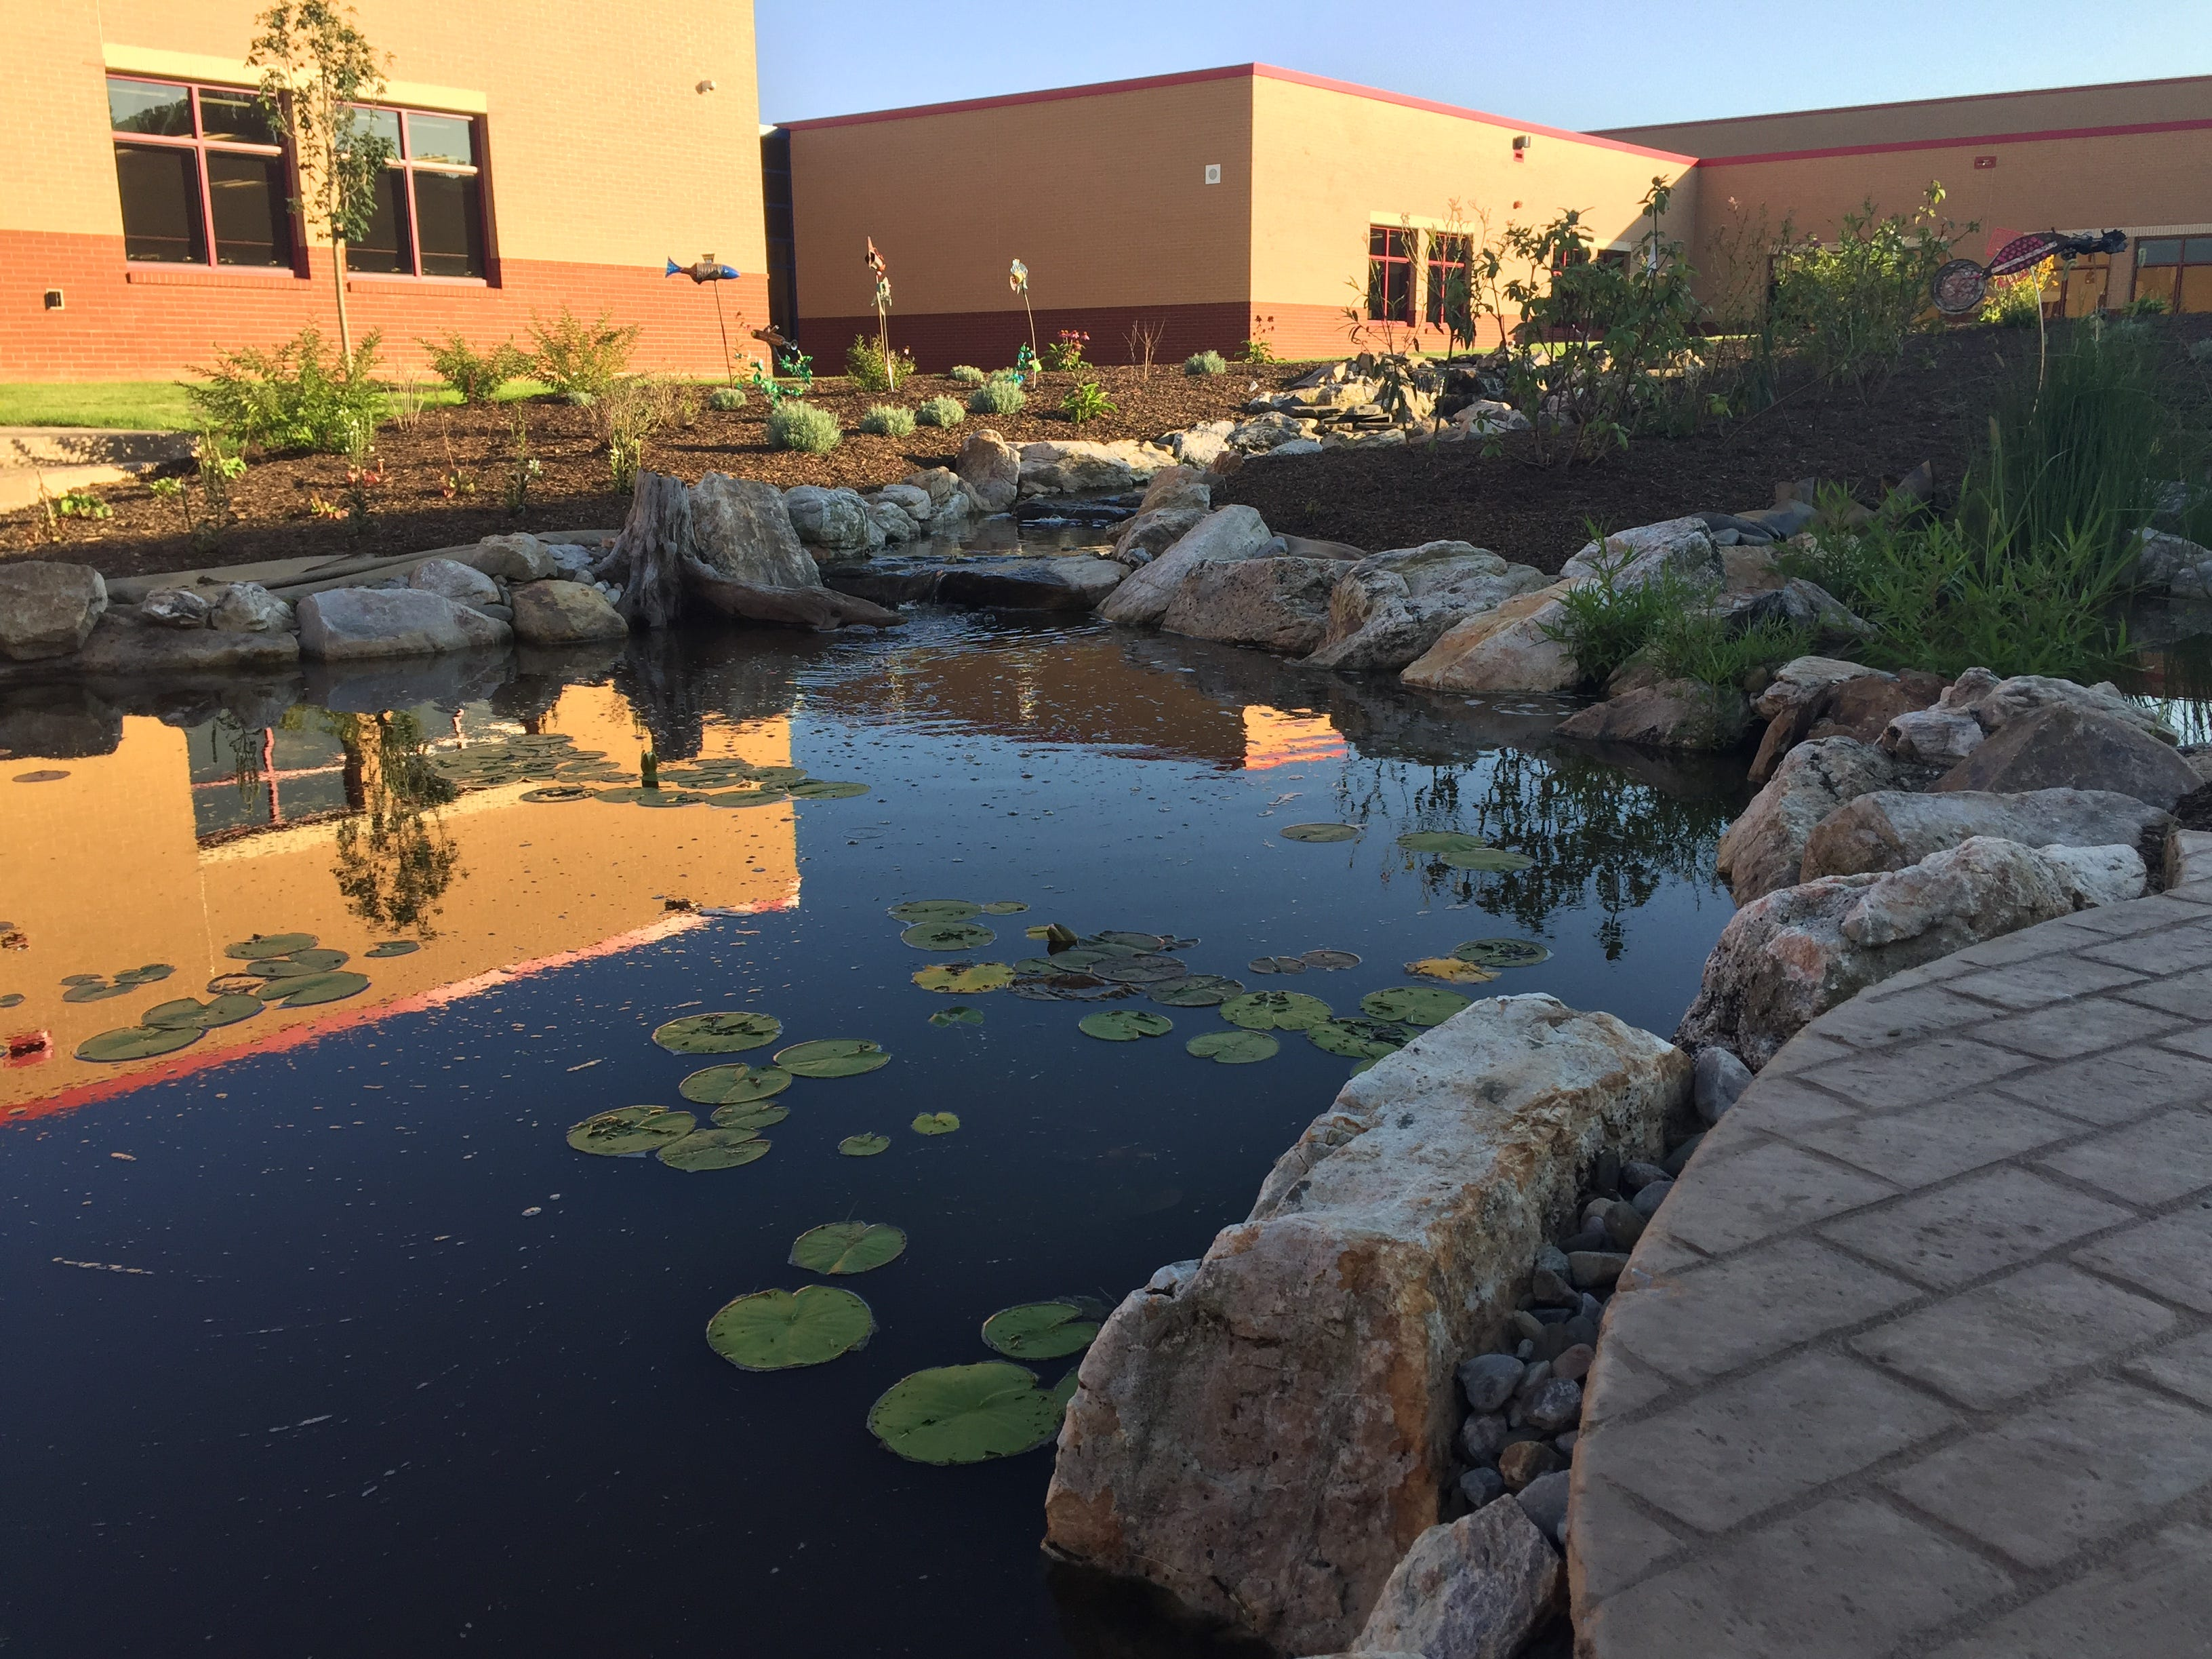 The courtyard and educational pond for life science and biology lessons at the new Northwest Elementary School Aug. 23, 2018. The school's STEAM (science, technology, engineering, art and math) and biology labs both have exits leading to the courtyard pond area.